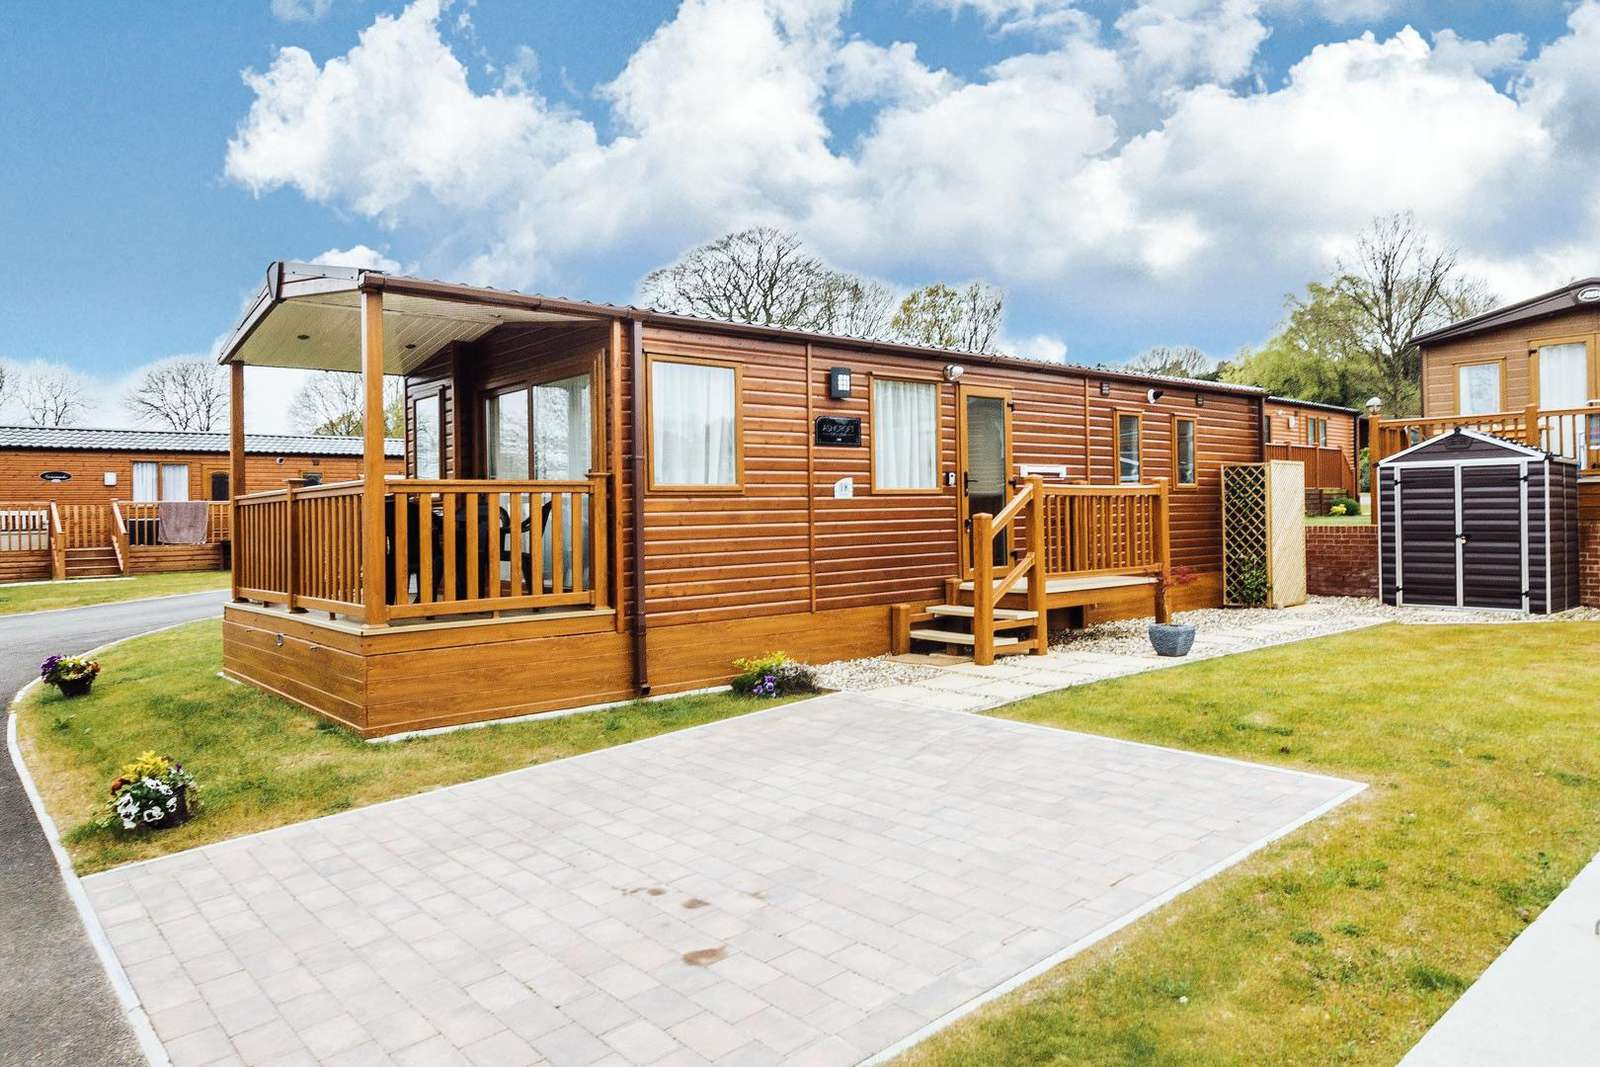 2 bedroom accommodation at Haveringland Hall Country Park.